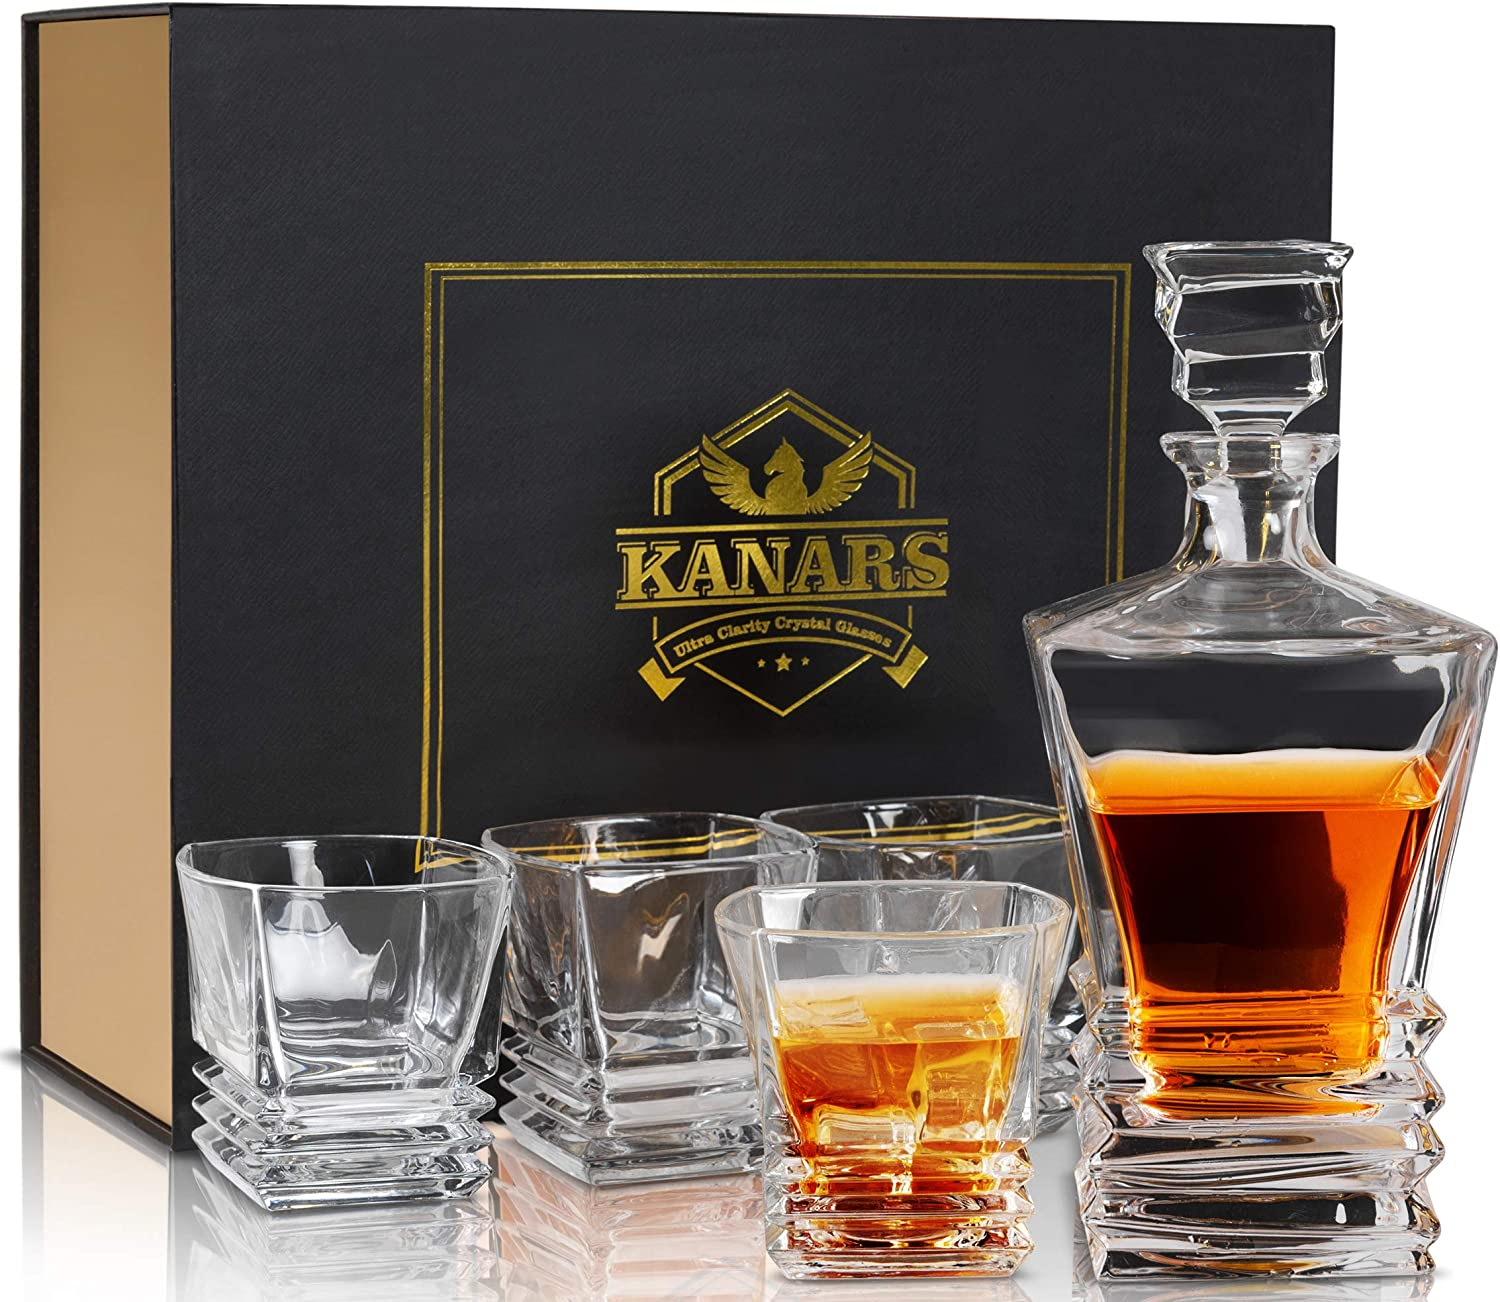 Kanars Whiskey Decanter And Glass Set Premium Lead Free Crystal Whisky Decanter With 4 Scotch Glasses Unique Luxury Gift For Men Dad Best Friend Husband Amazon Ca Home Kitchen